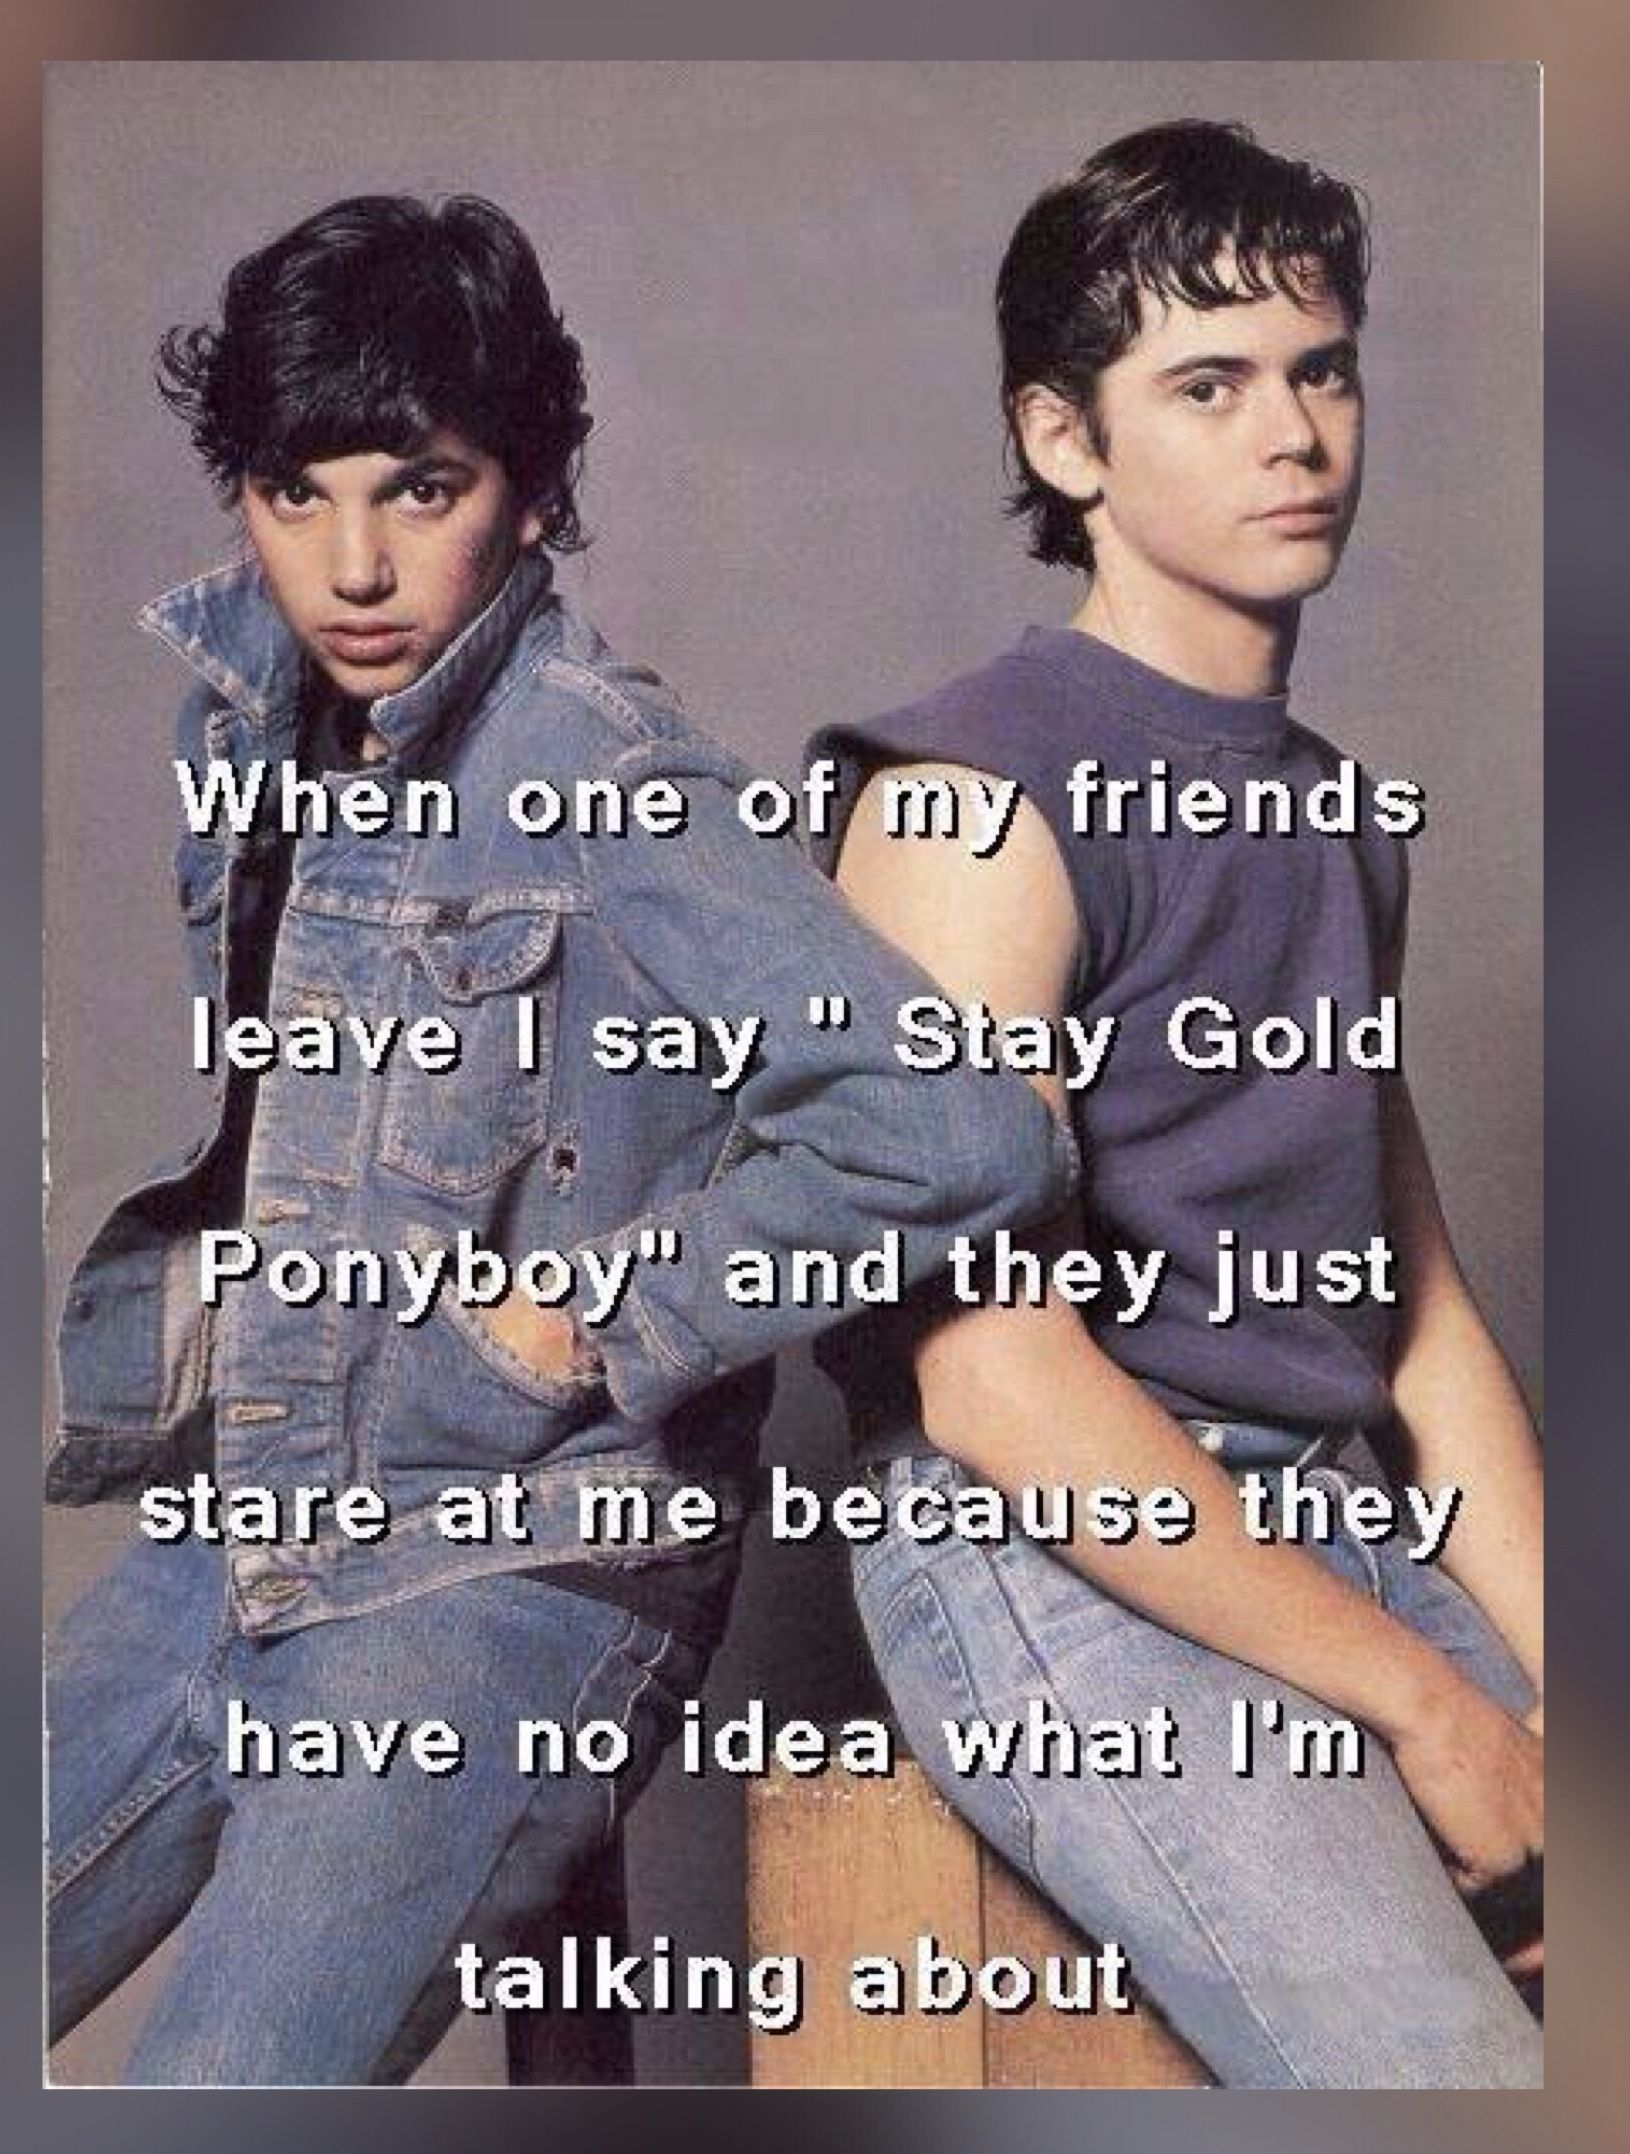 Stay Gold Stay Gold Ponyboy Stay Gold The Outsiders When he says stay gold, ponyboy. stay gold stay gold ponyboy stay